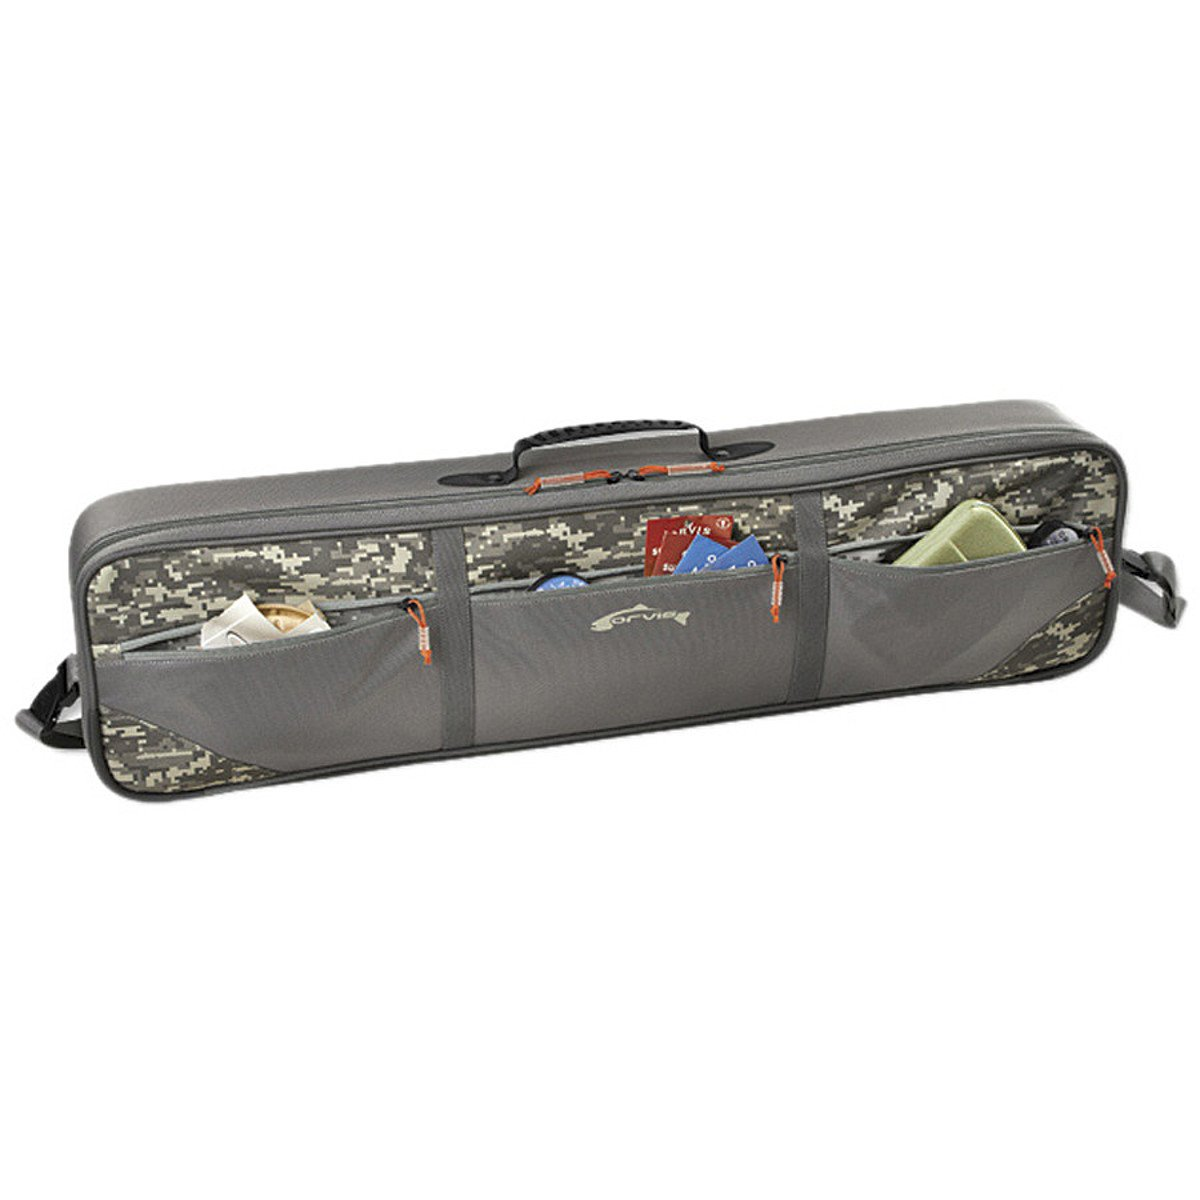 Orvis Safe Passage Carry-It-All Rod and Gear Case Digital Camo, M